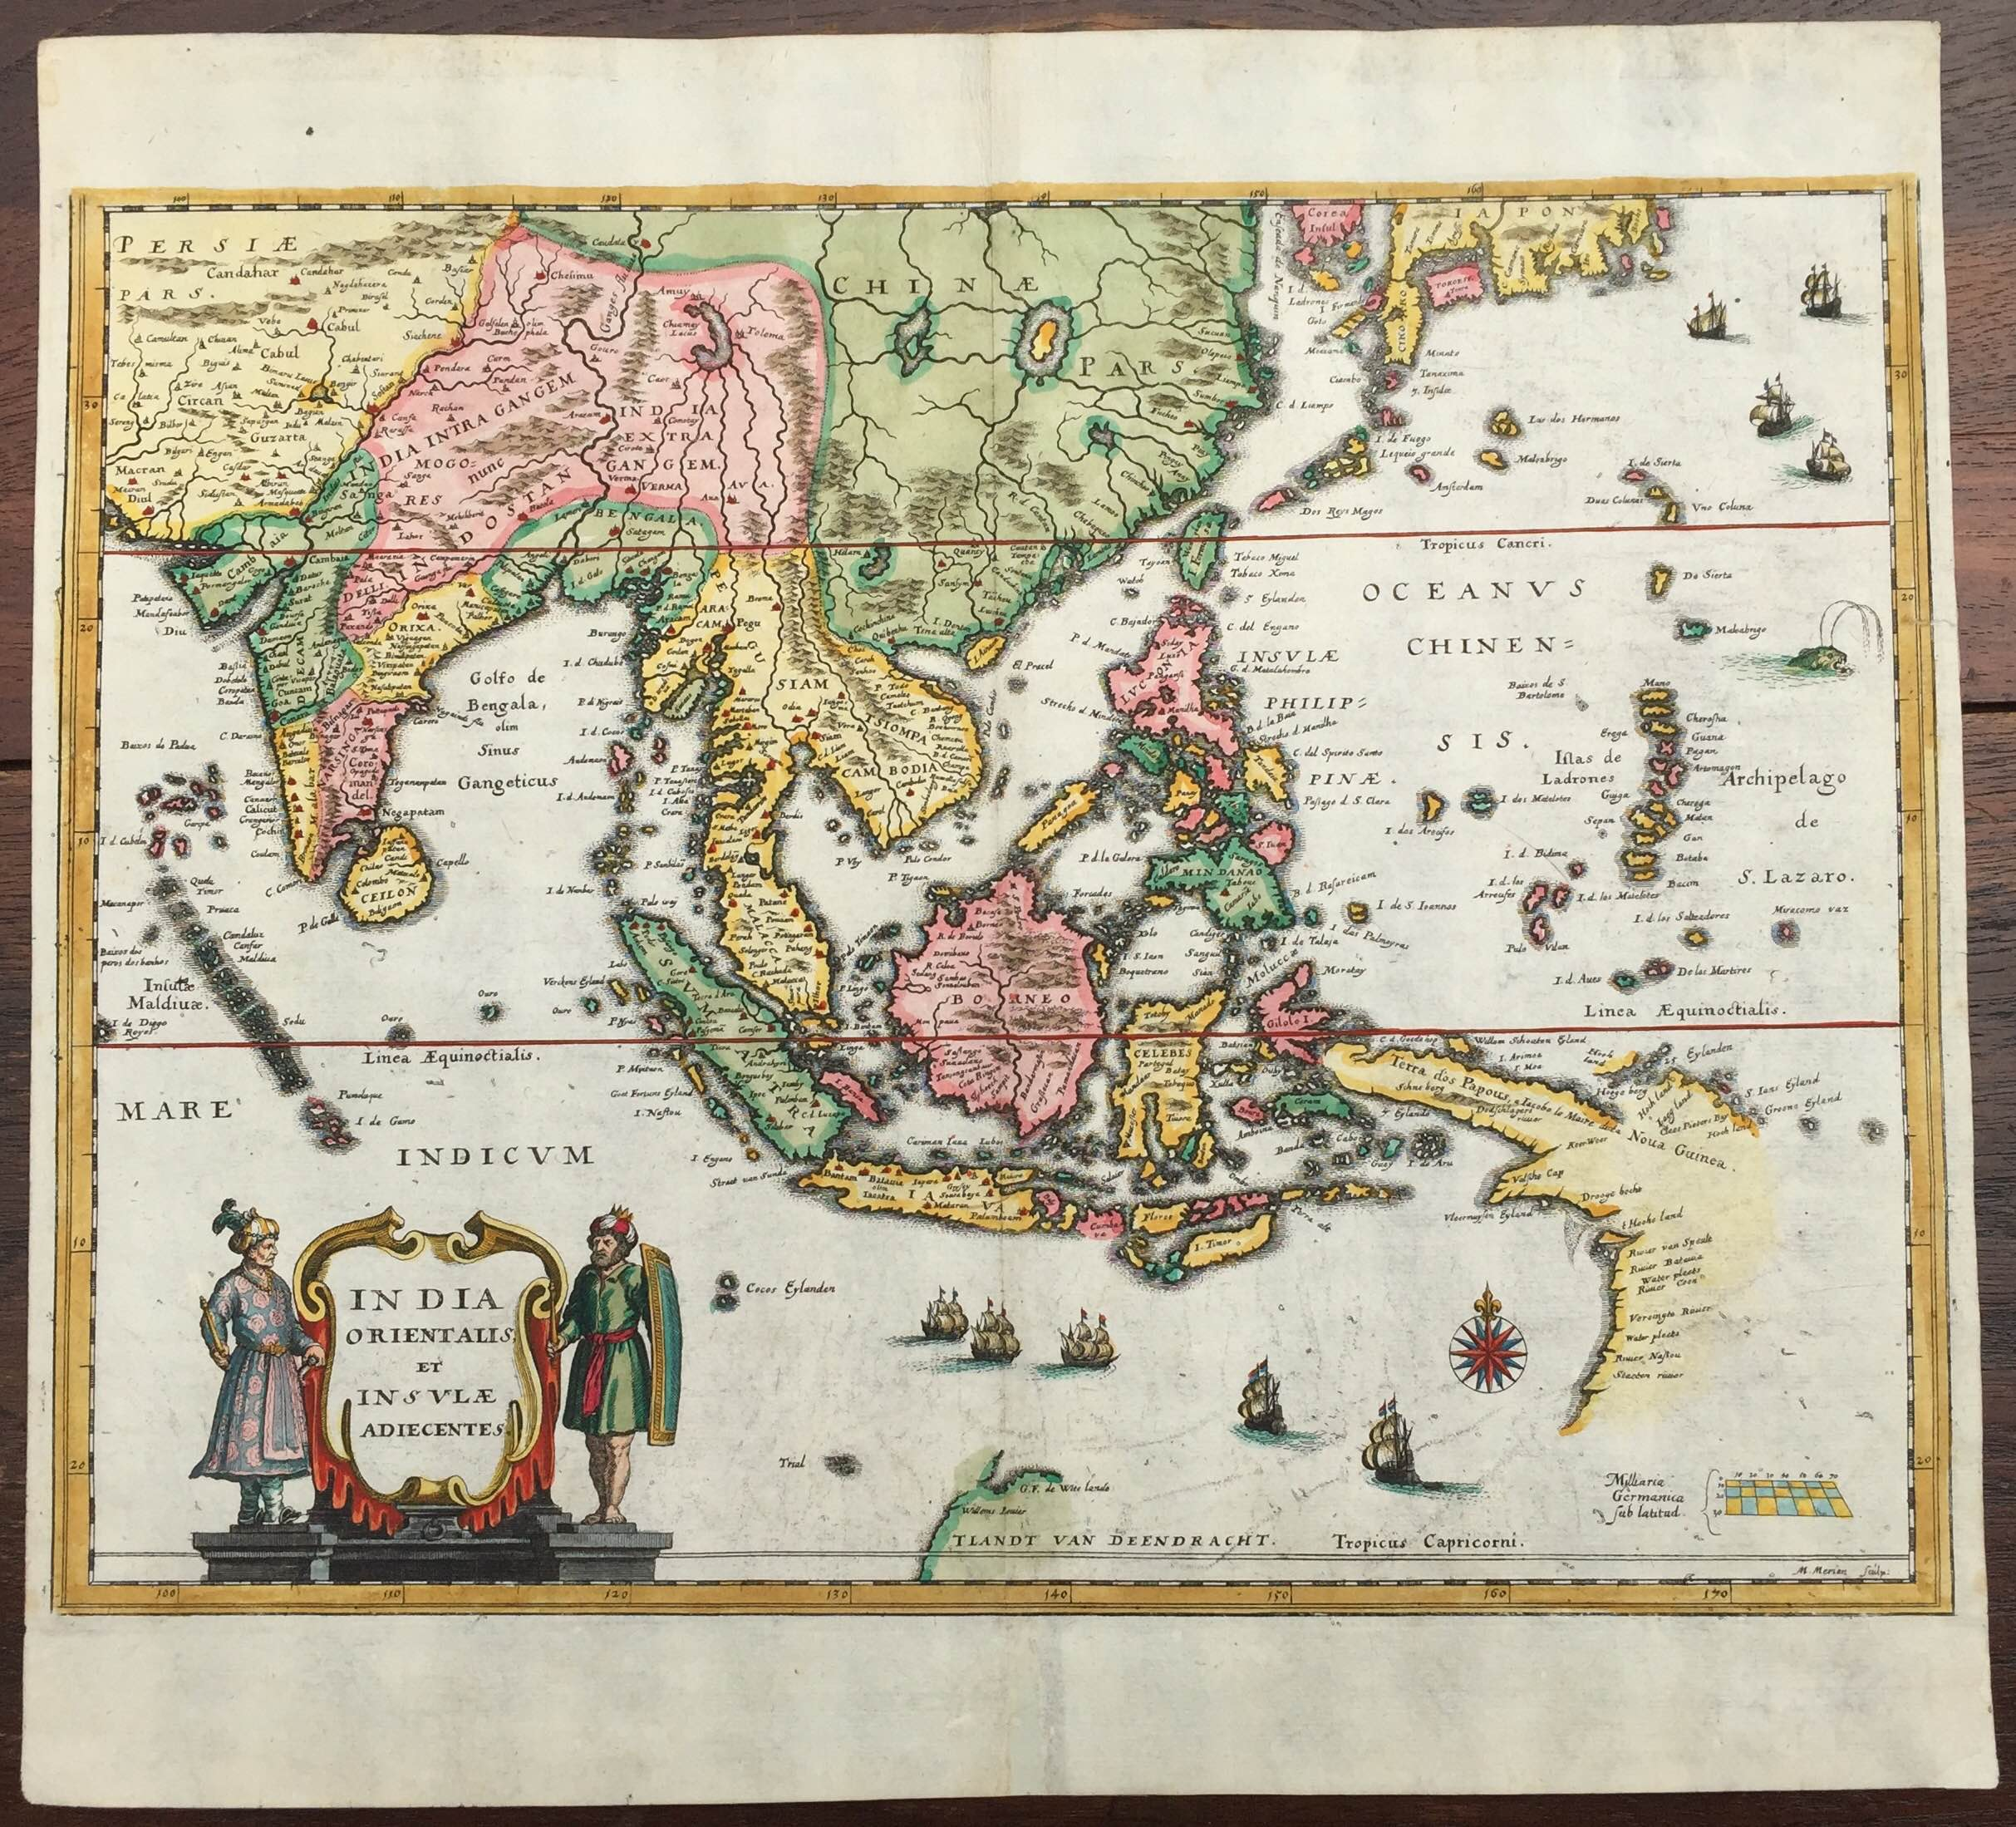 Map Of East And Southeast Asia.Antique Map South East Asia By Merian C 1638 Bartele Gallery